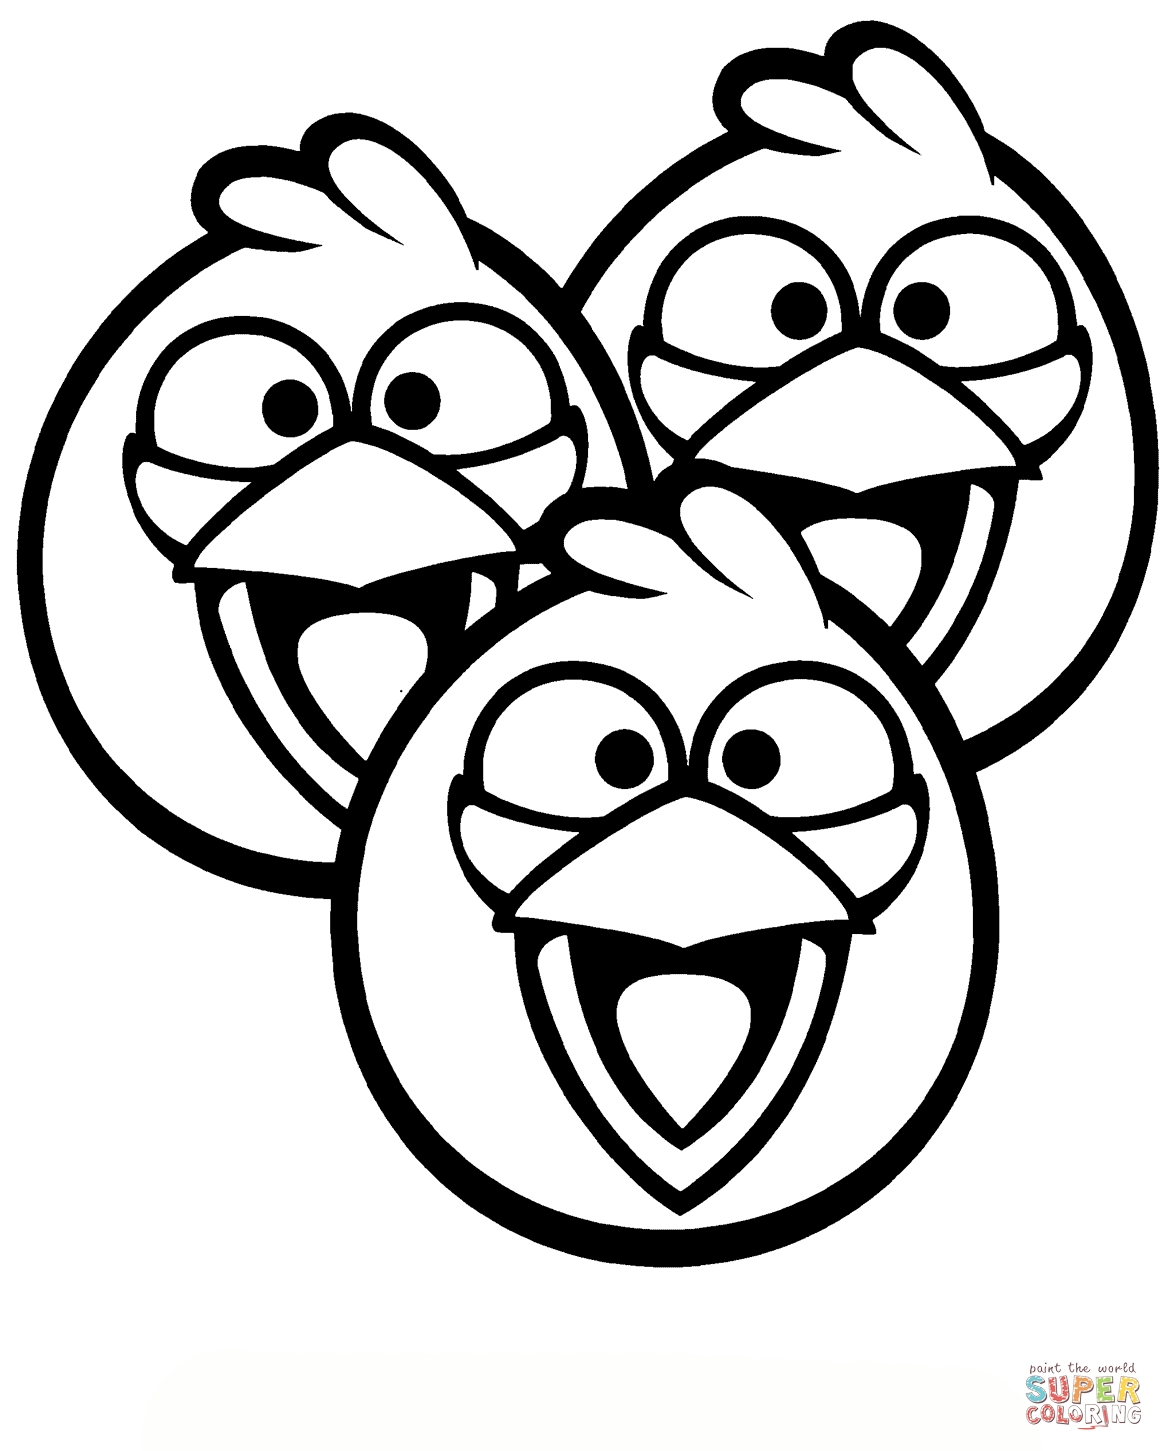 1164x1451 Angry Birds Coloring Pages Blue Bird To Print Free Coloring Sheets